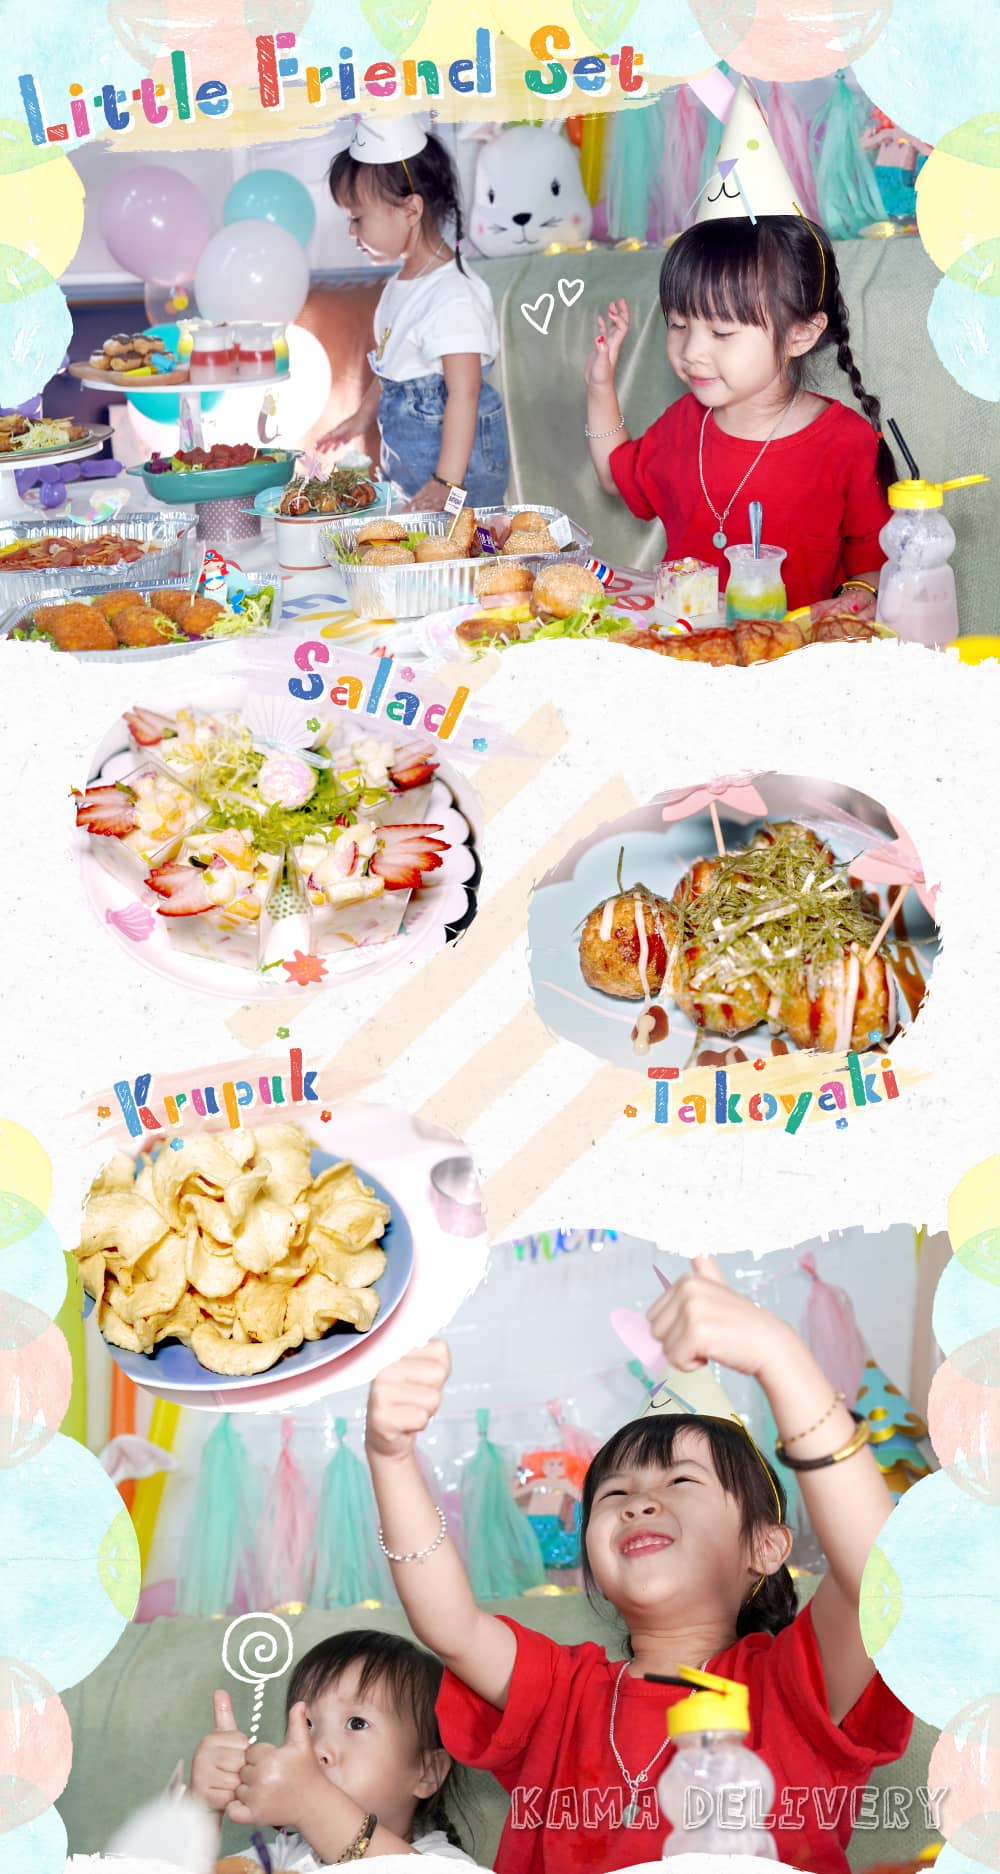 Little Friend Set (For 6-8 Persons)|小朋友生日派對到會|Kama Delivery美食到會外賣推介